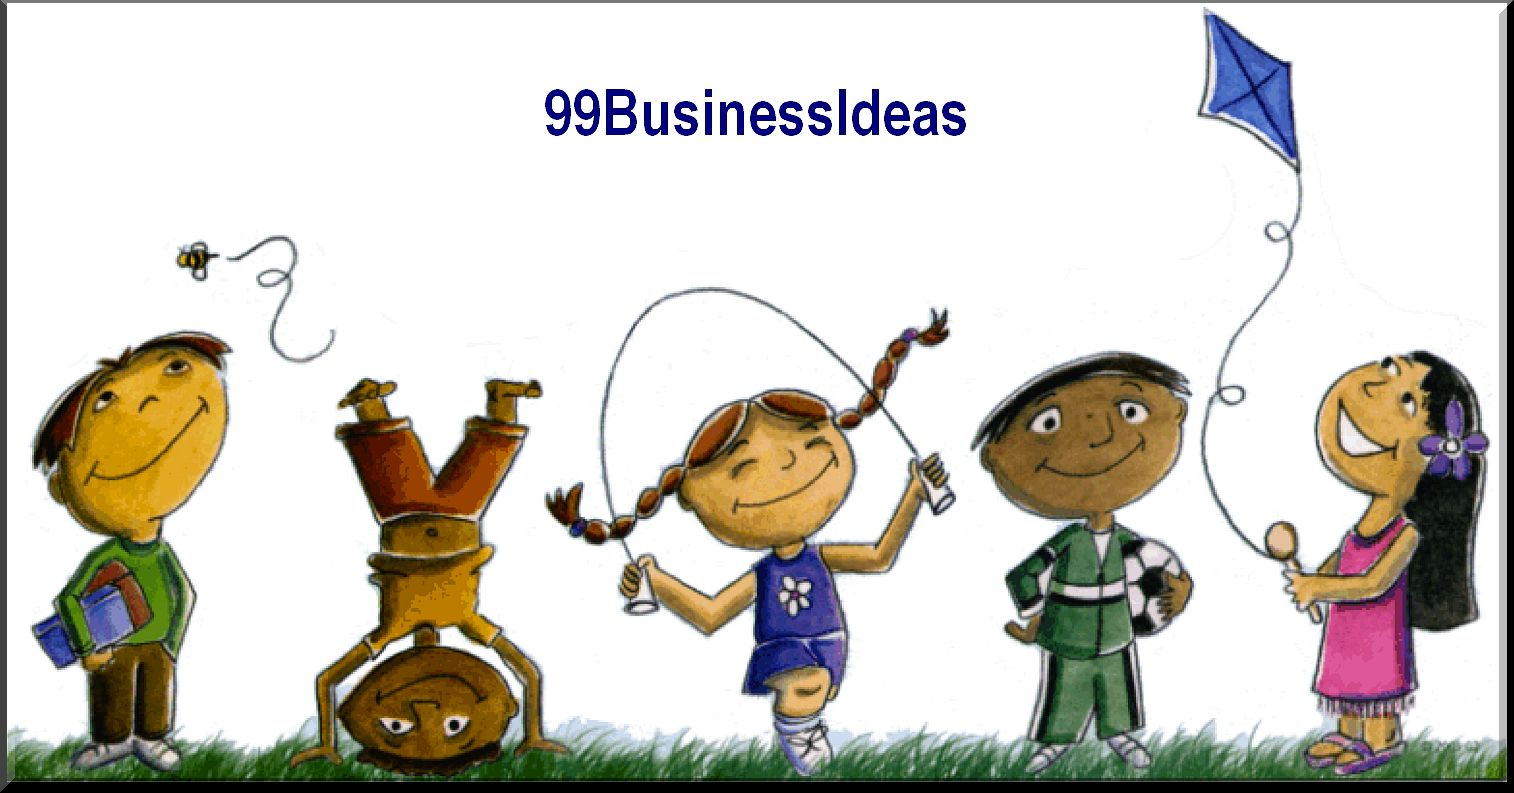 99BusinessIdeas.com